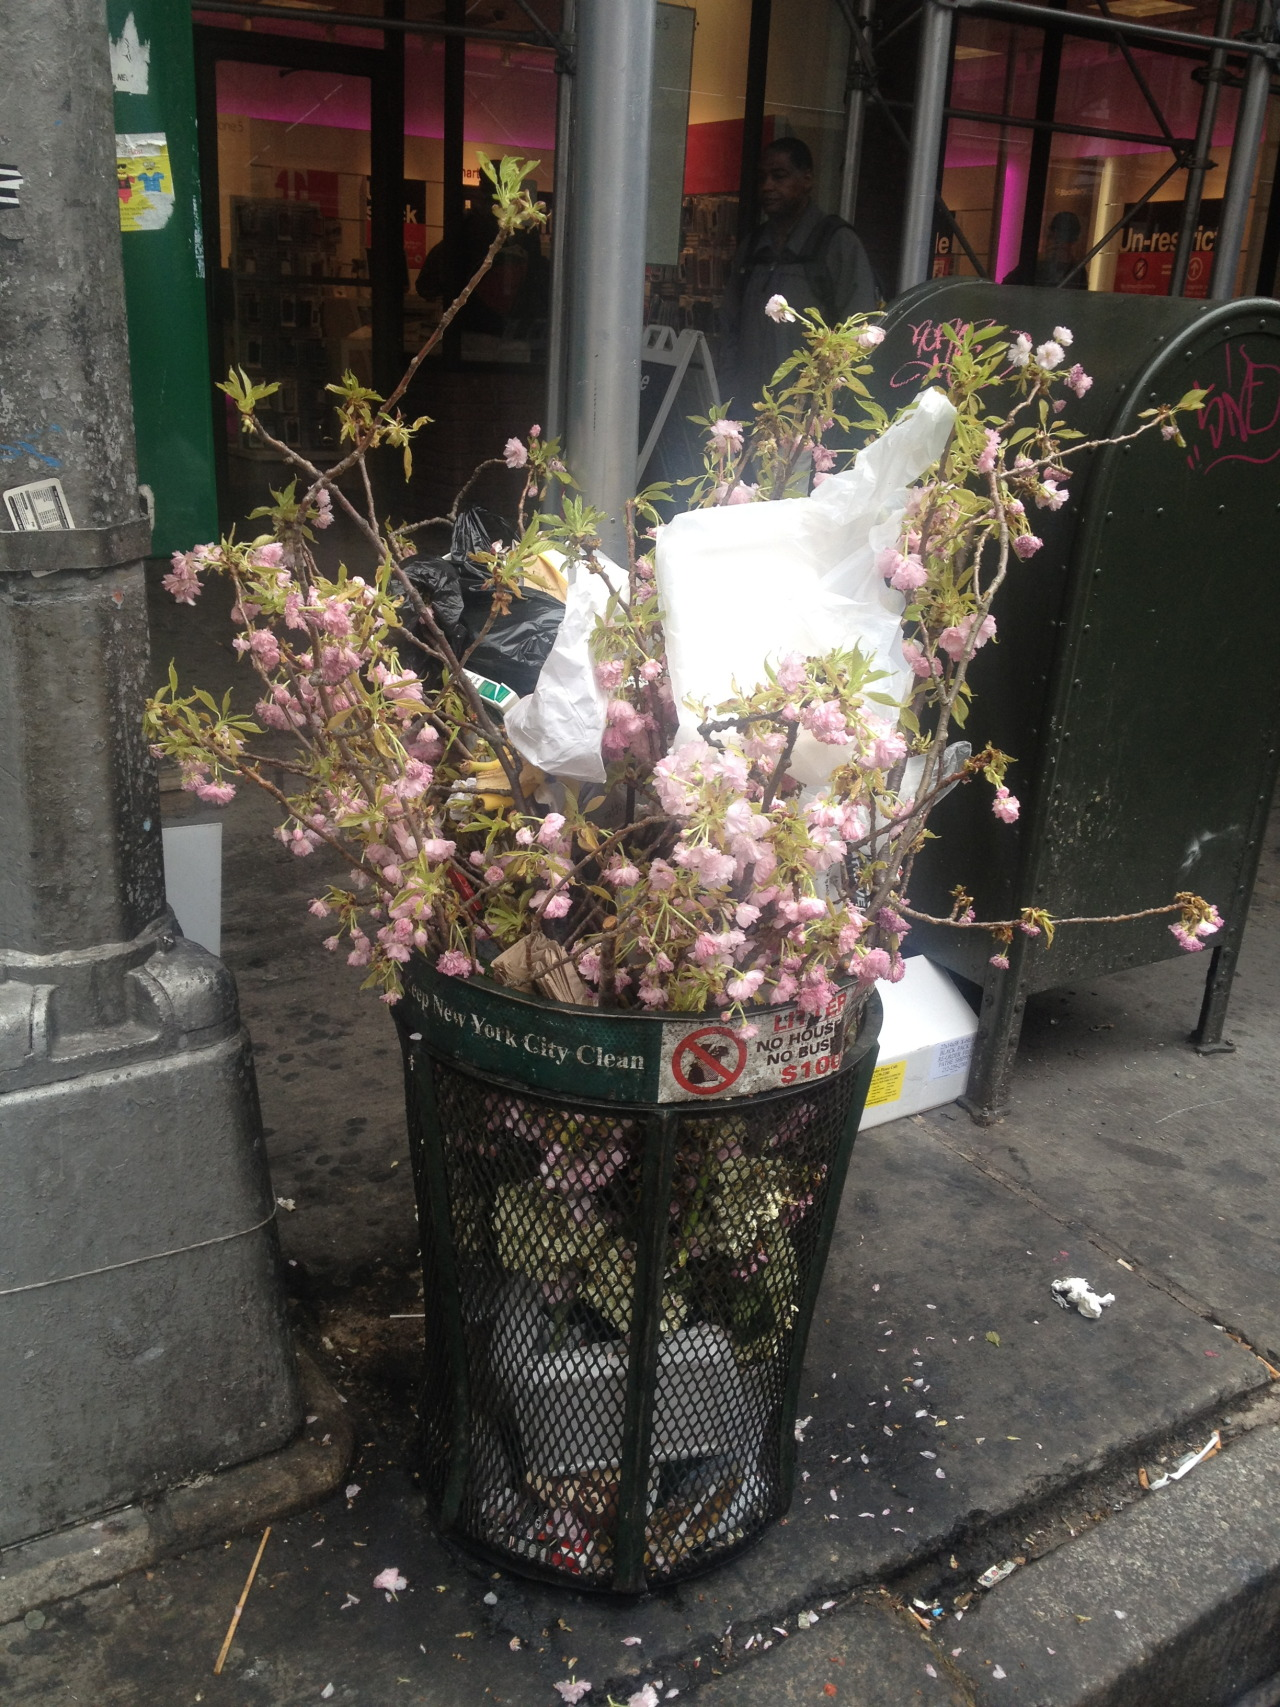 newyorkfromthebottom:   On the corner of 28th and 7th Avenue, someone threw out Spring. Whomever owned these beautiful branches of cherry blossoms decided they didn't want them or need them, or whatever- and threw them away in the corner trashcan. It's at the edge of the flower district, so it was probably a flower merchant who decided they were unsalable and didn't want to tote them around anymore. This beauty, this sign of spring, life, growth, went right in the garbage, and the city moved on. People piled their own trash on top of the flowers. Starbucks cups, pizza plates, plastic bags, the flotsam of city life was piled high of the pink blossoms. And the garbage, too, was a sign of life. We're outside, we're on the streets, we're enjoying our city, one of the greatest cities in the world. And it's Spring. NYC Forever.